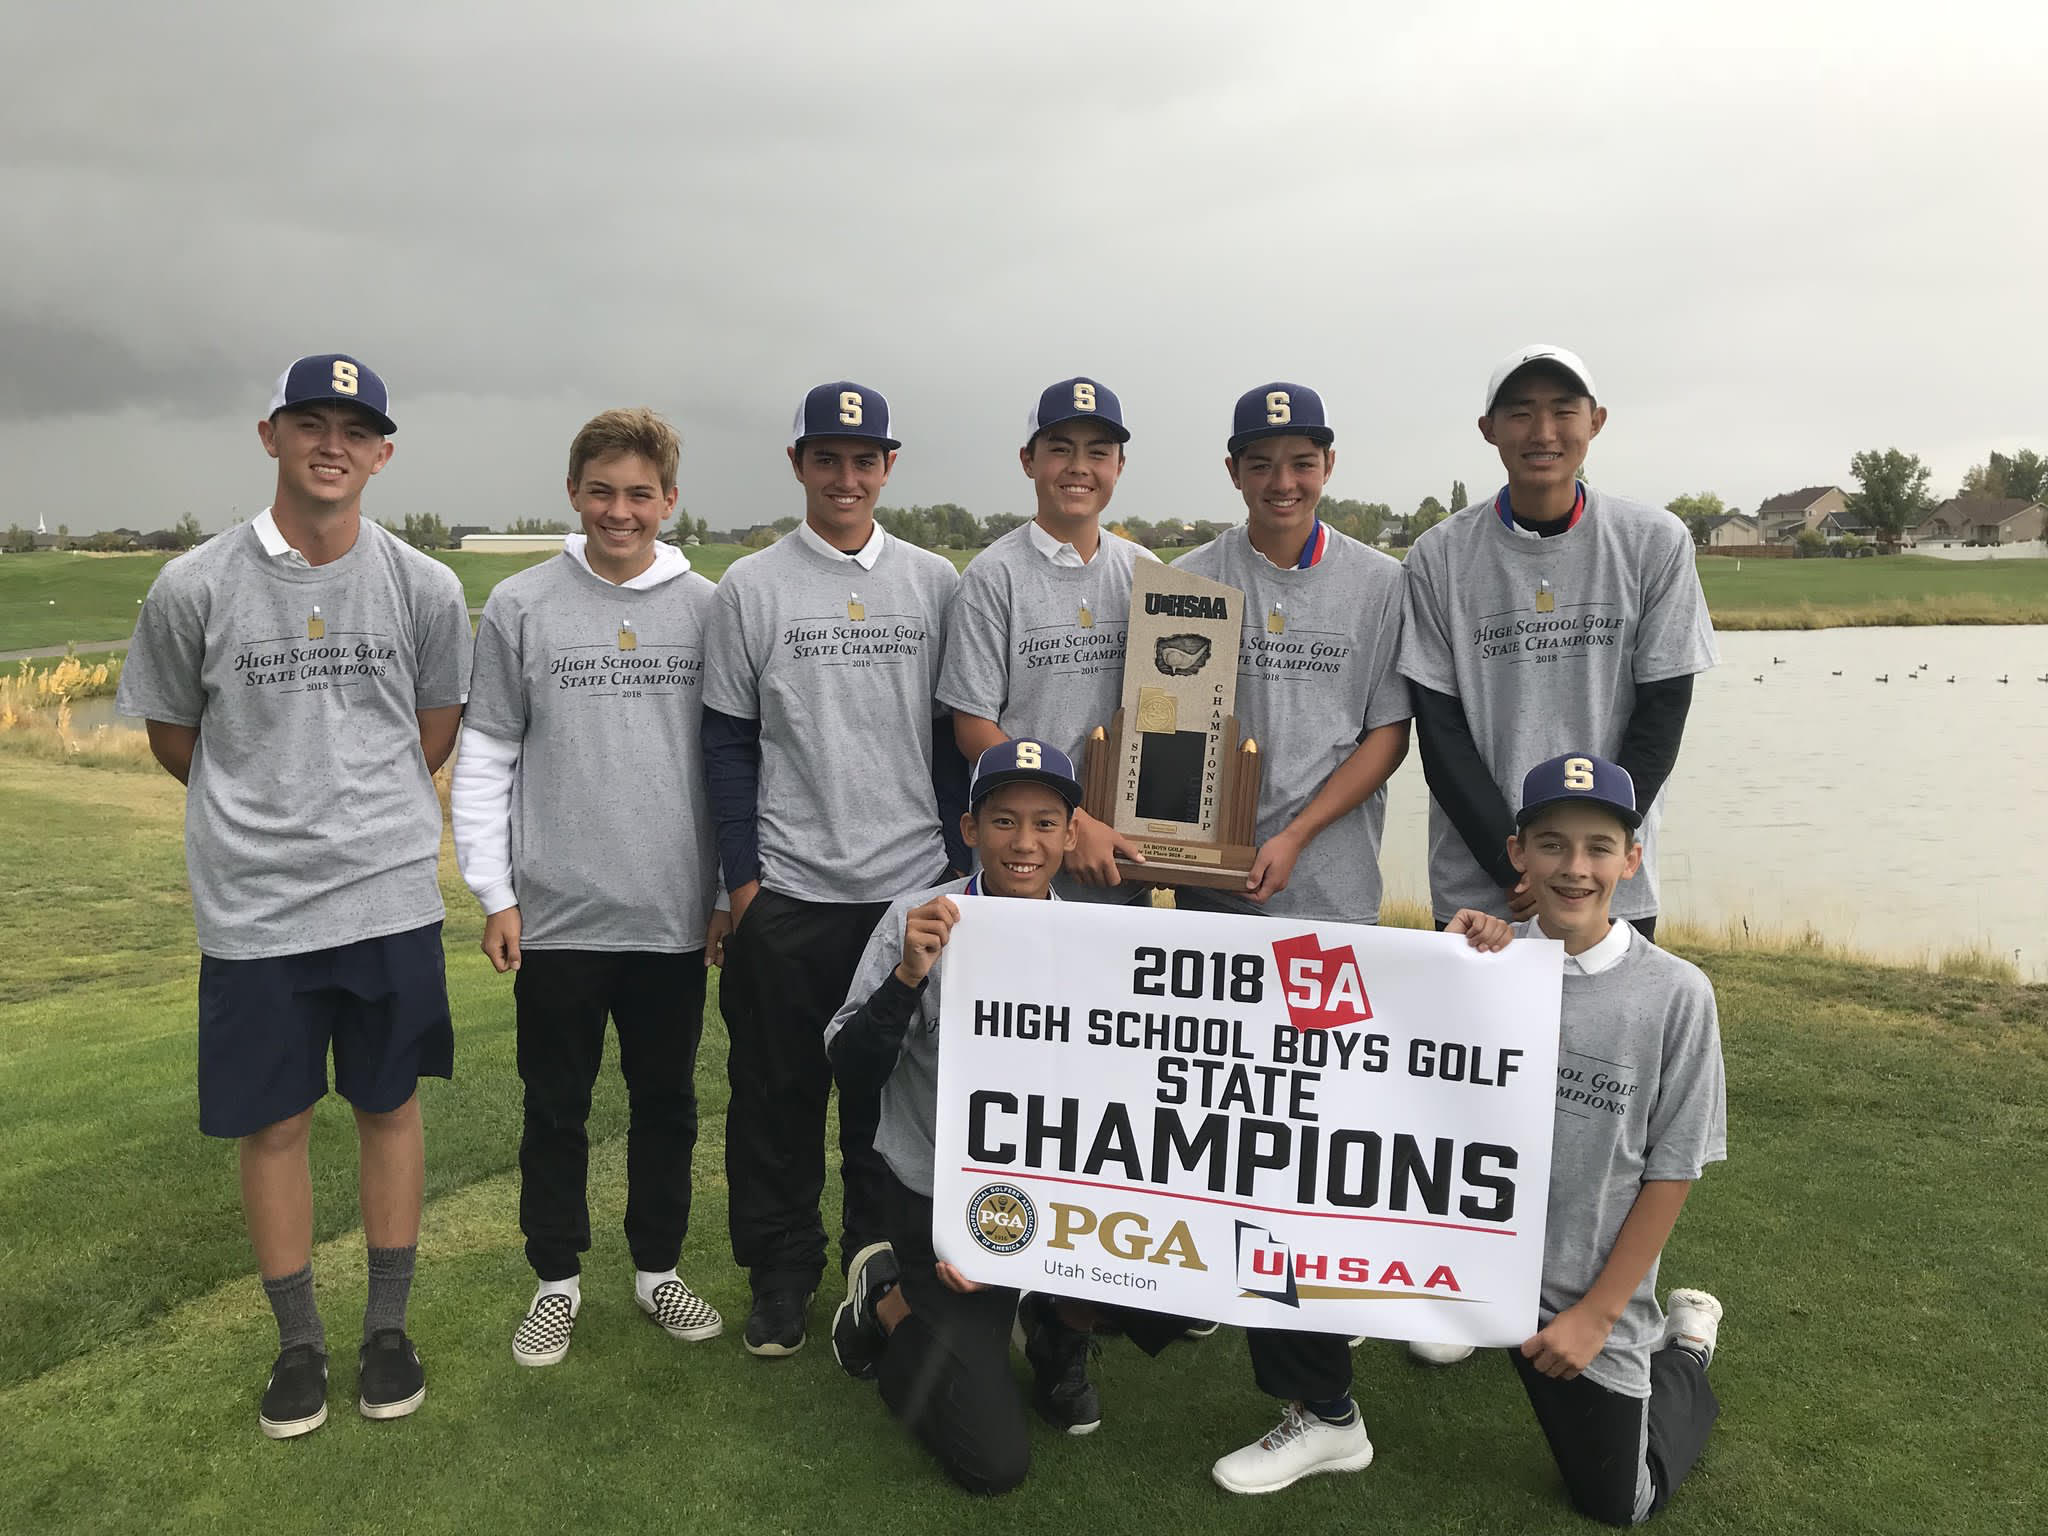 Skyline wins State Championship by 19 strokes